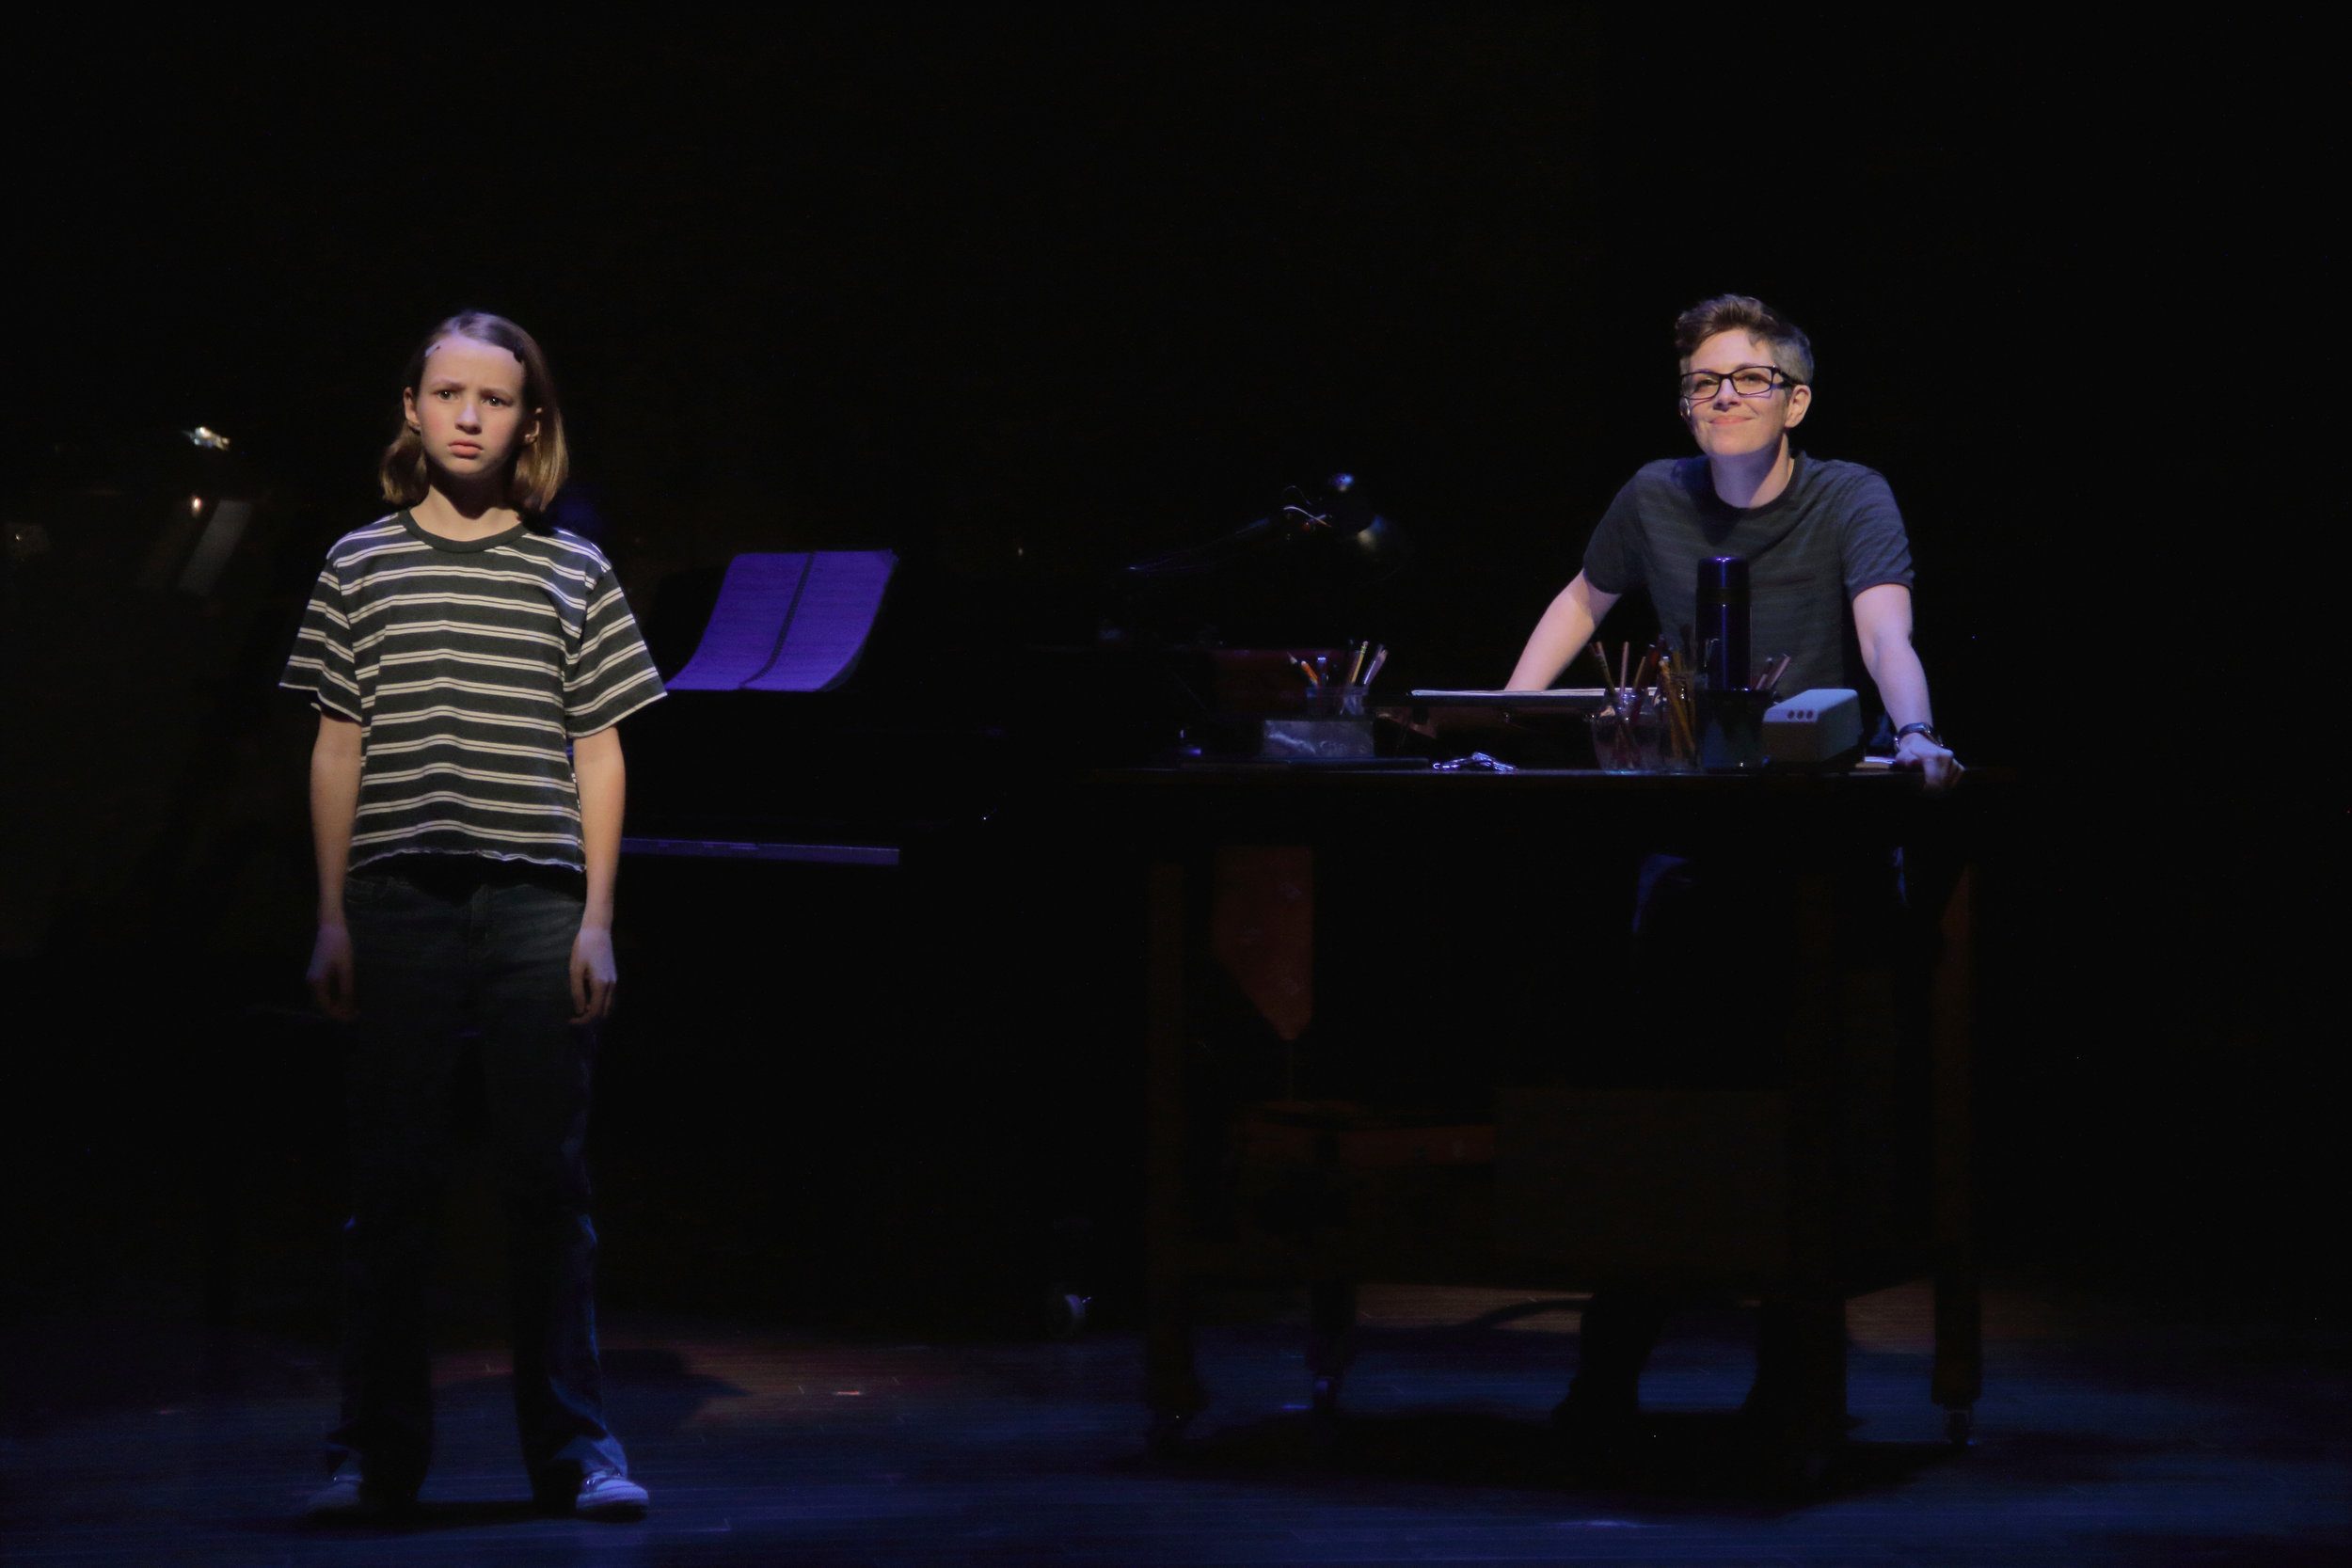 Copy of FunHome closeups 135_edit.jpg